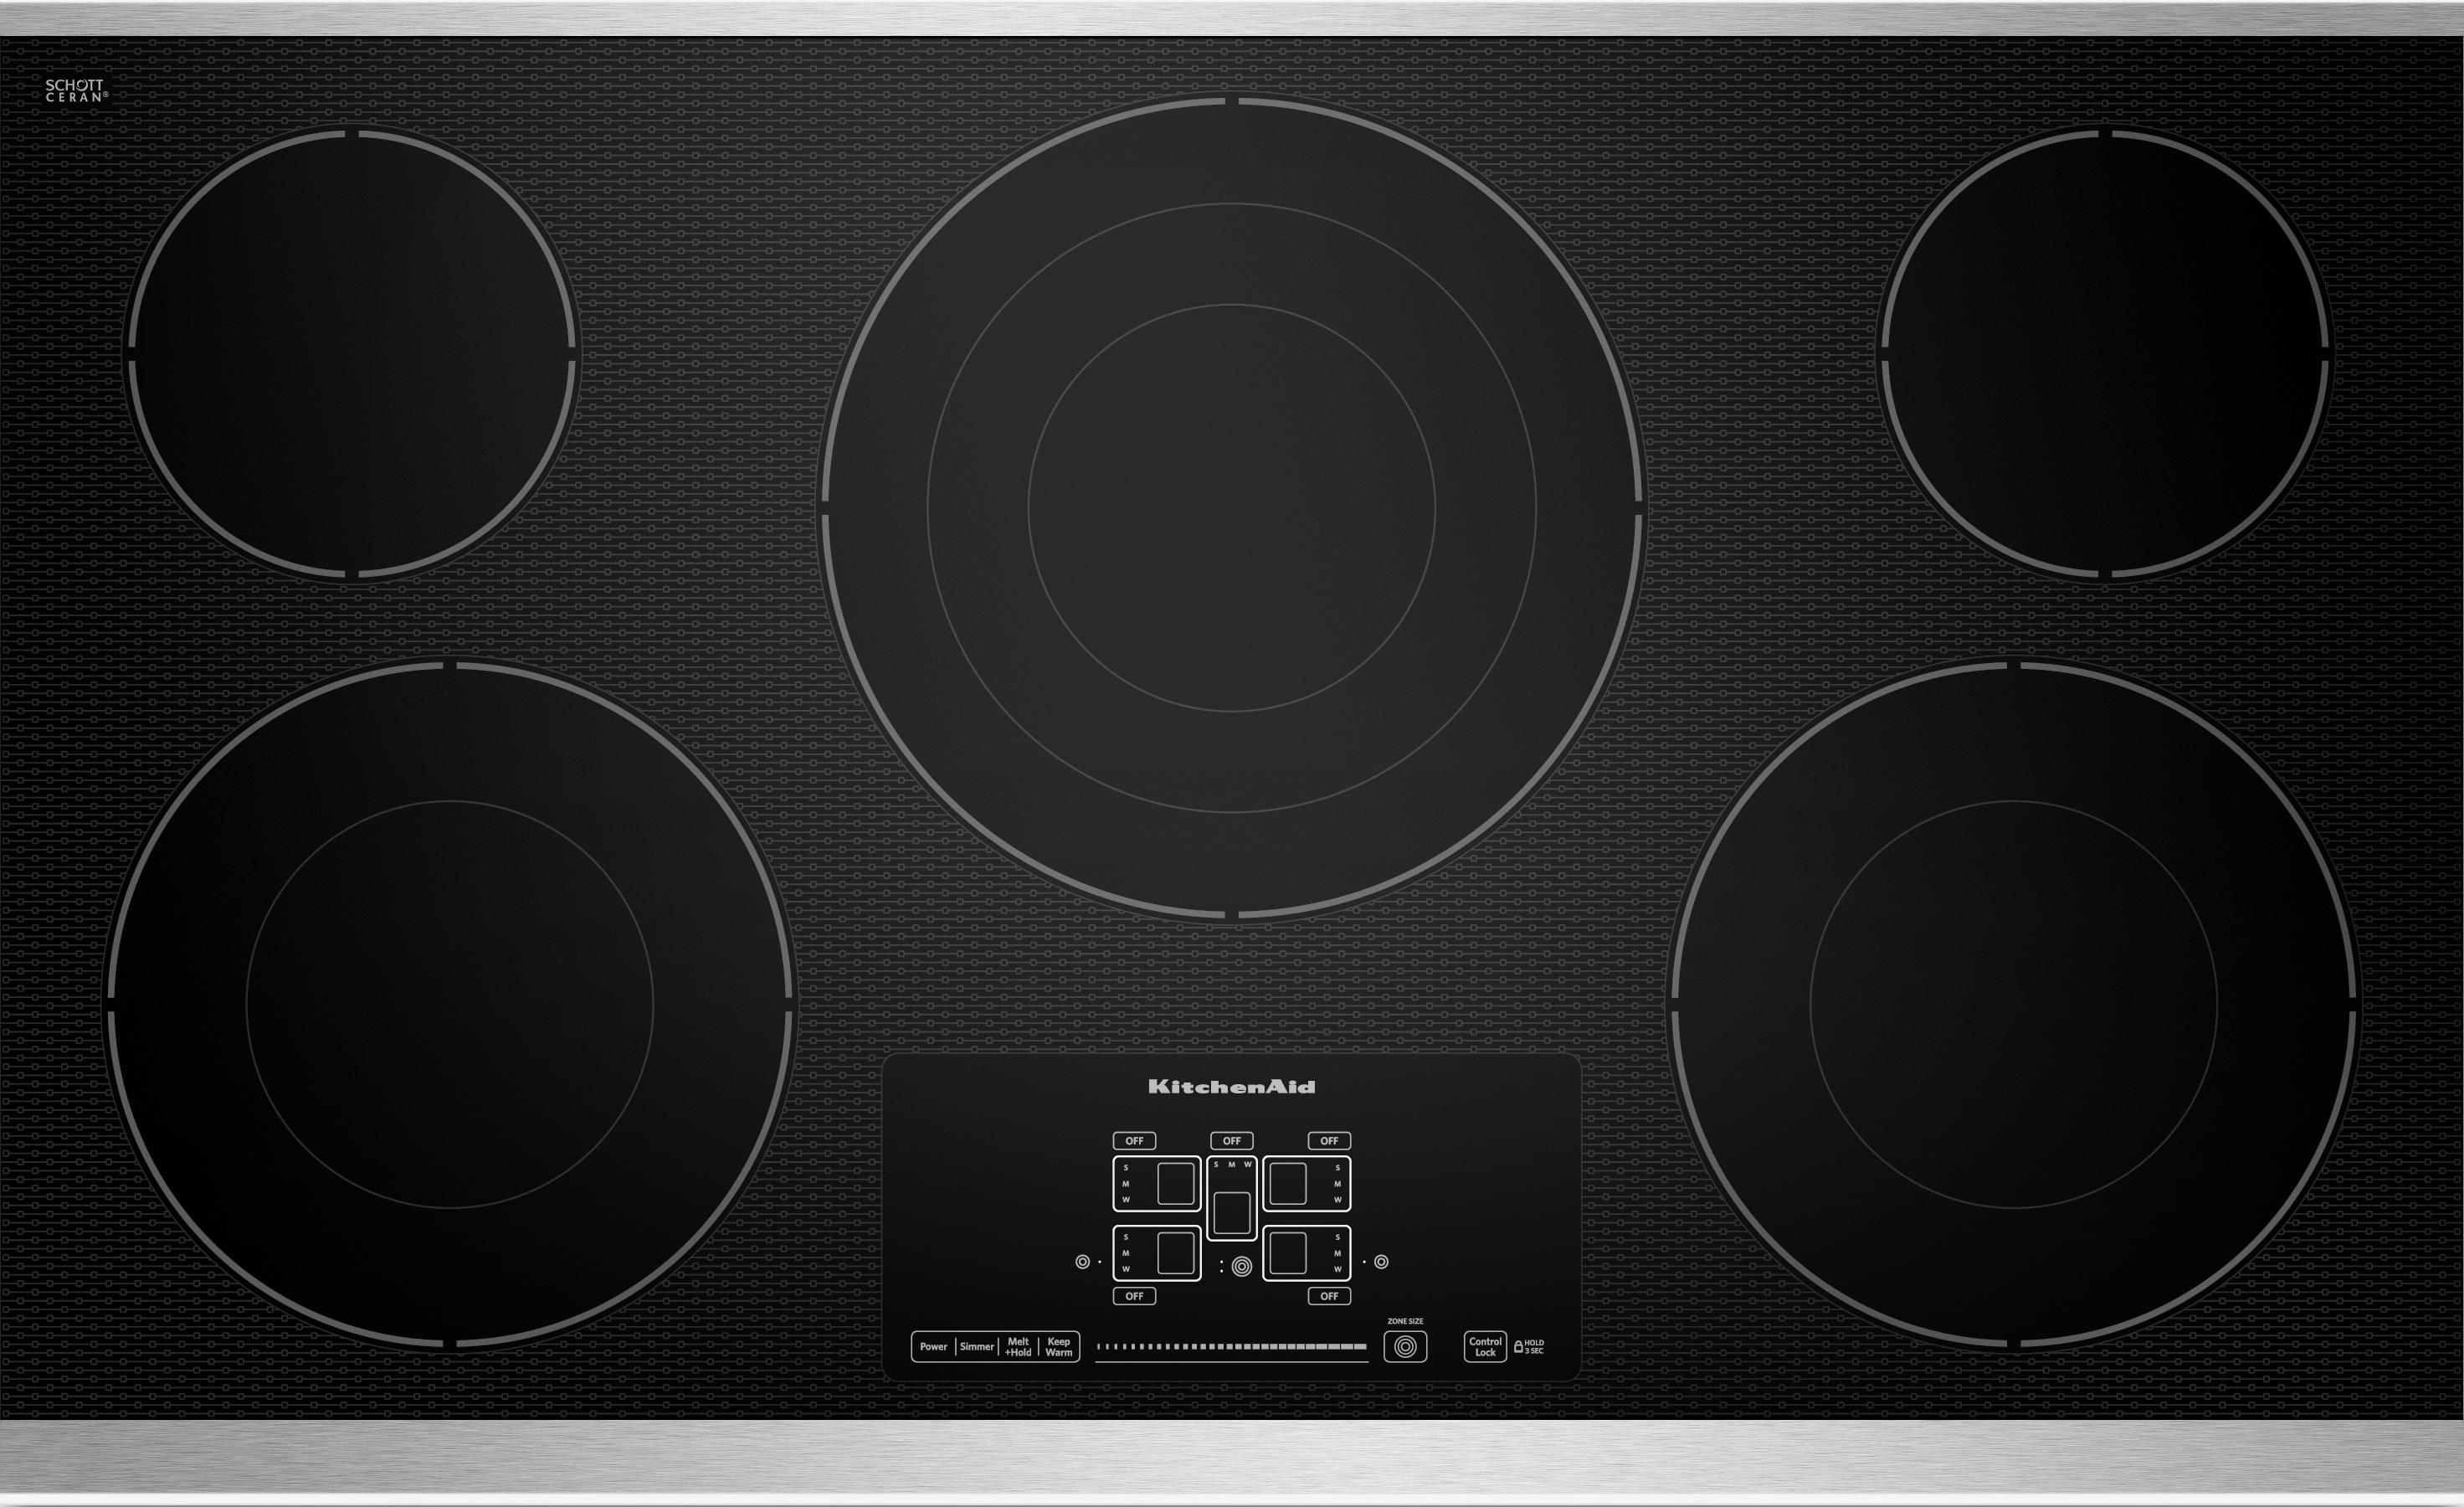 """KitchenAid Electric Cooktops - Kitchenaid 36"""" Built-In Electric Cooktop - Item Number: KECC667BSS"""